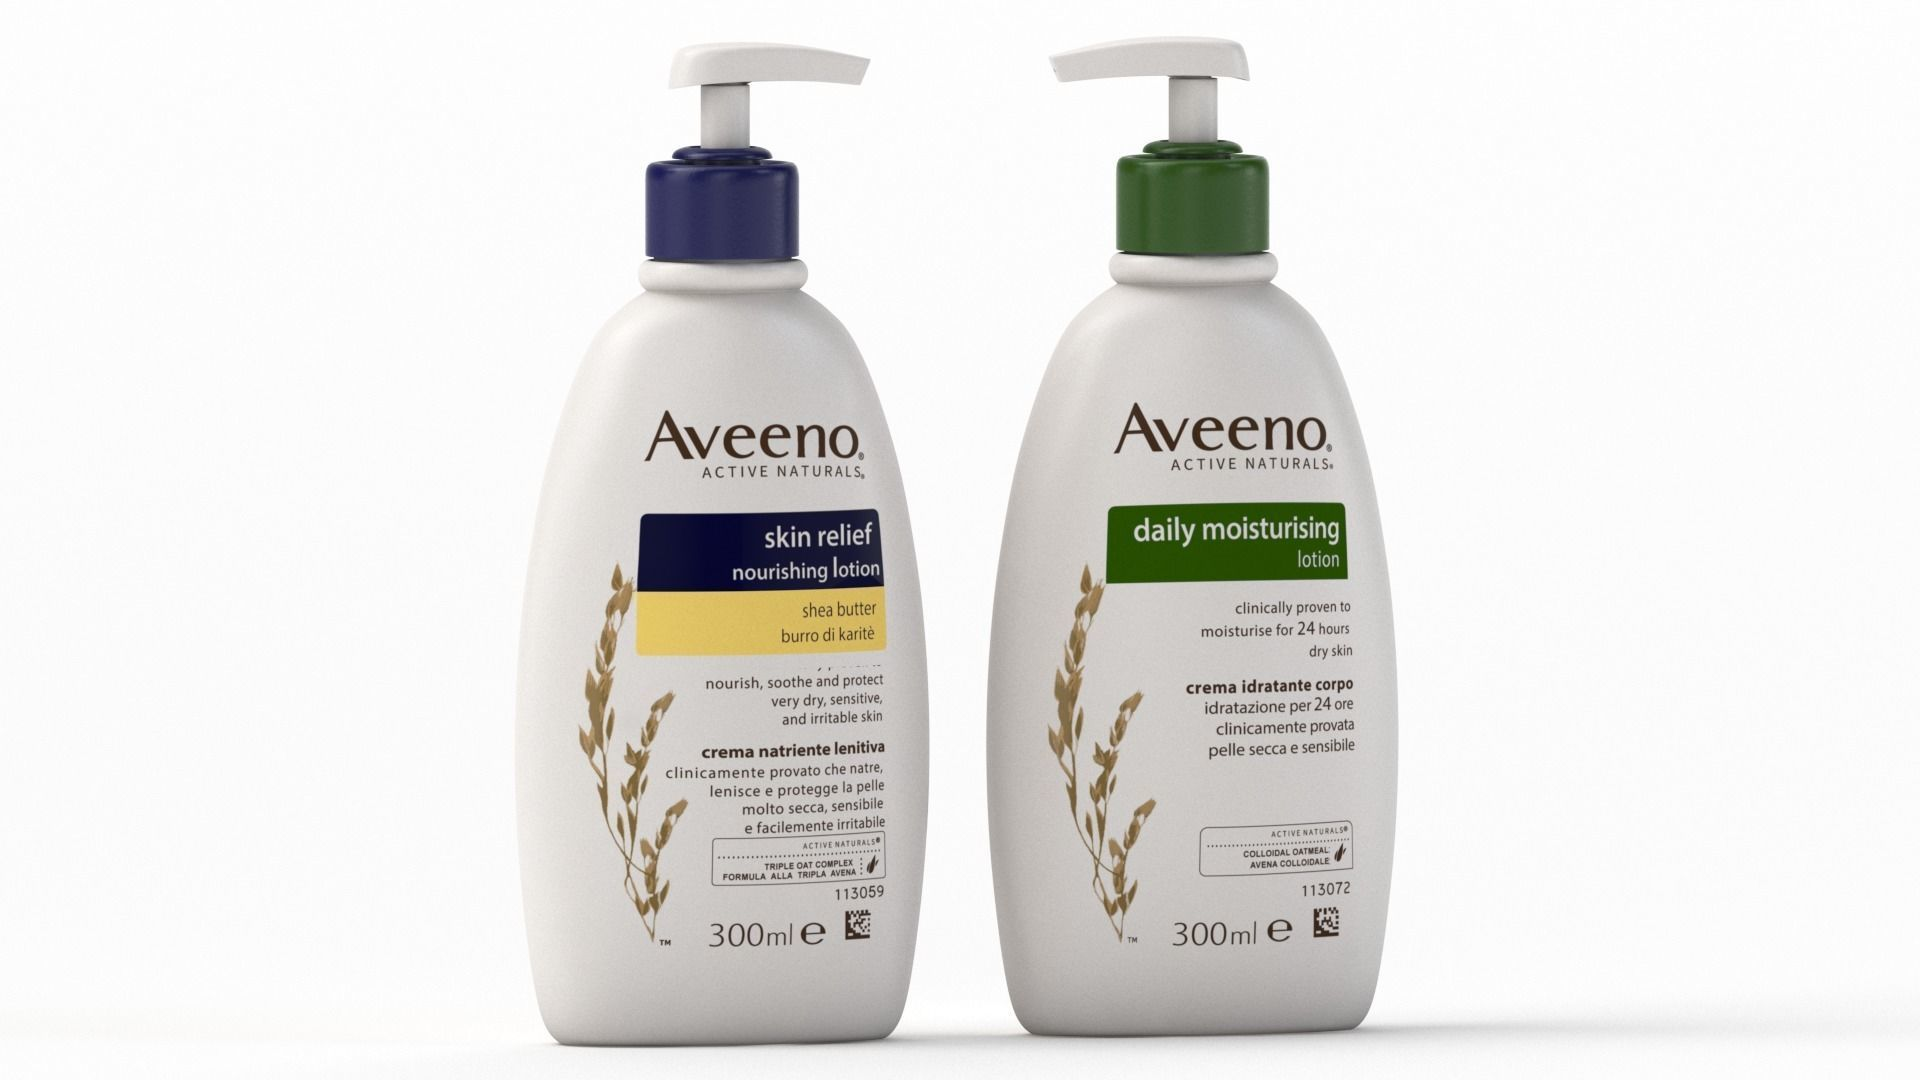 Aveeno Active Naturals Lotion bottle